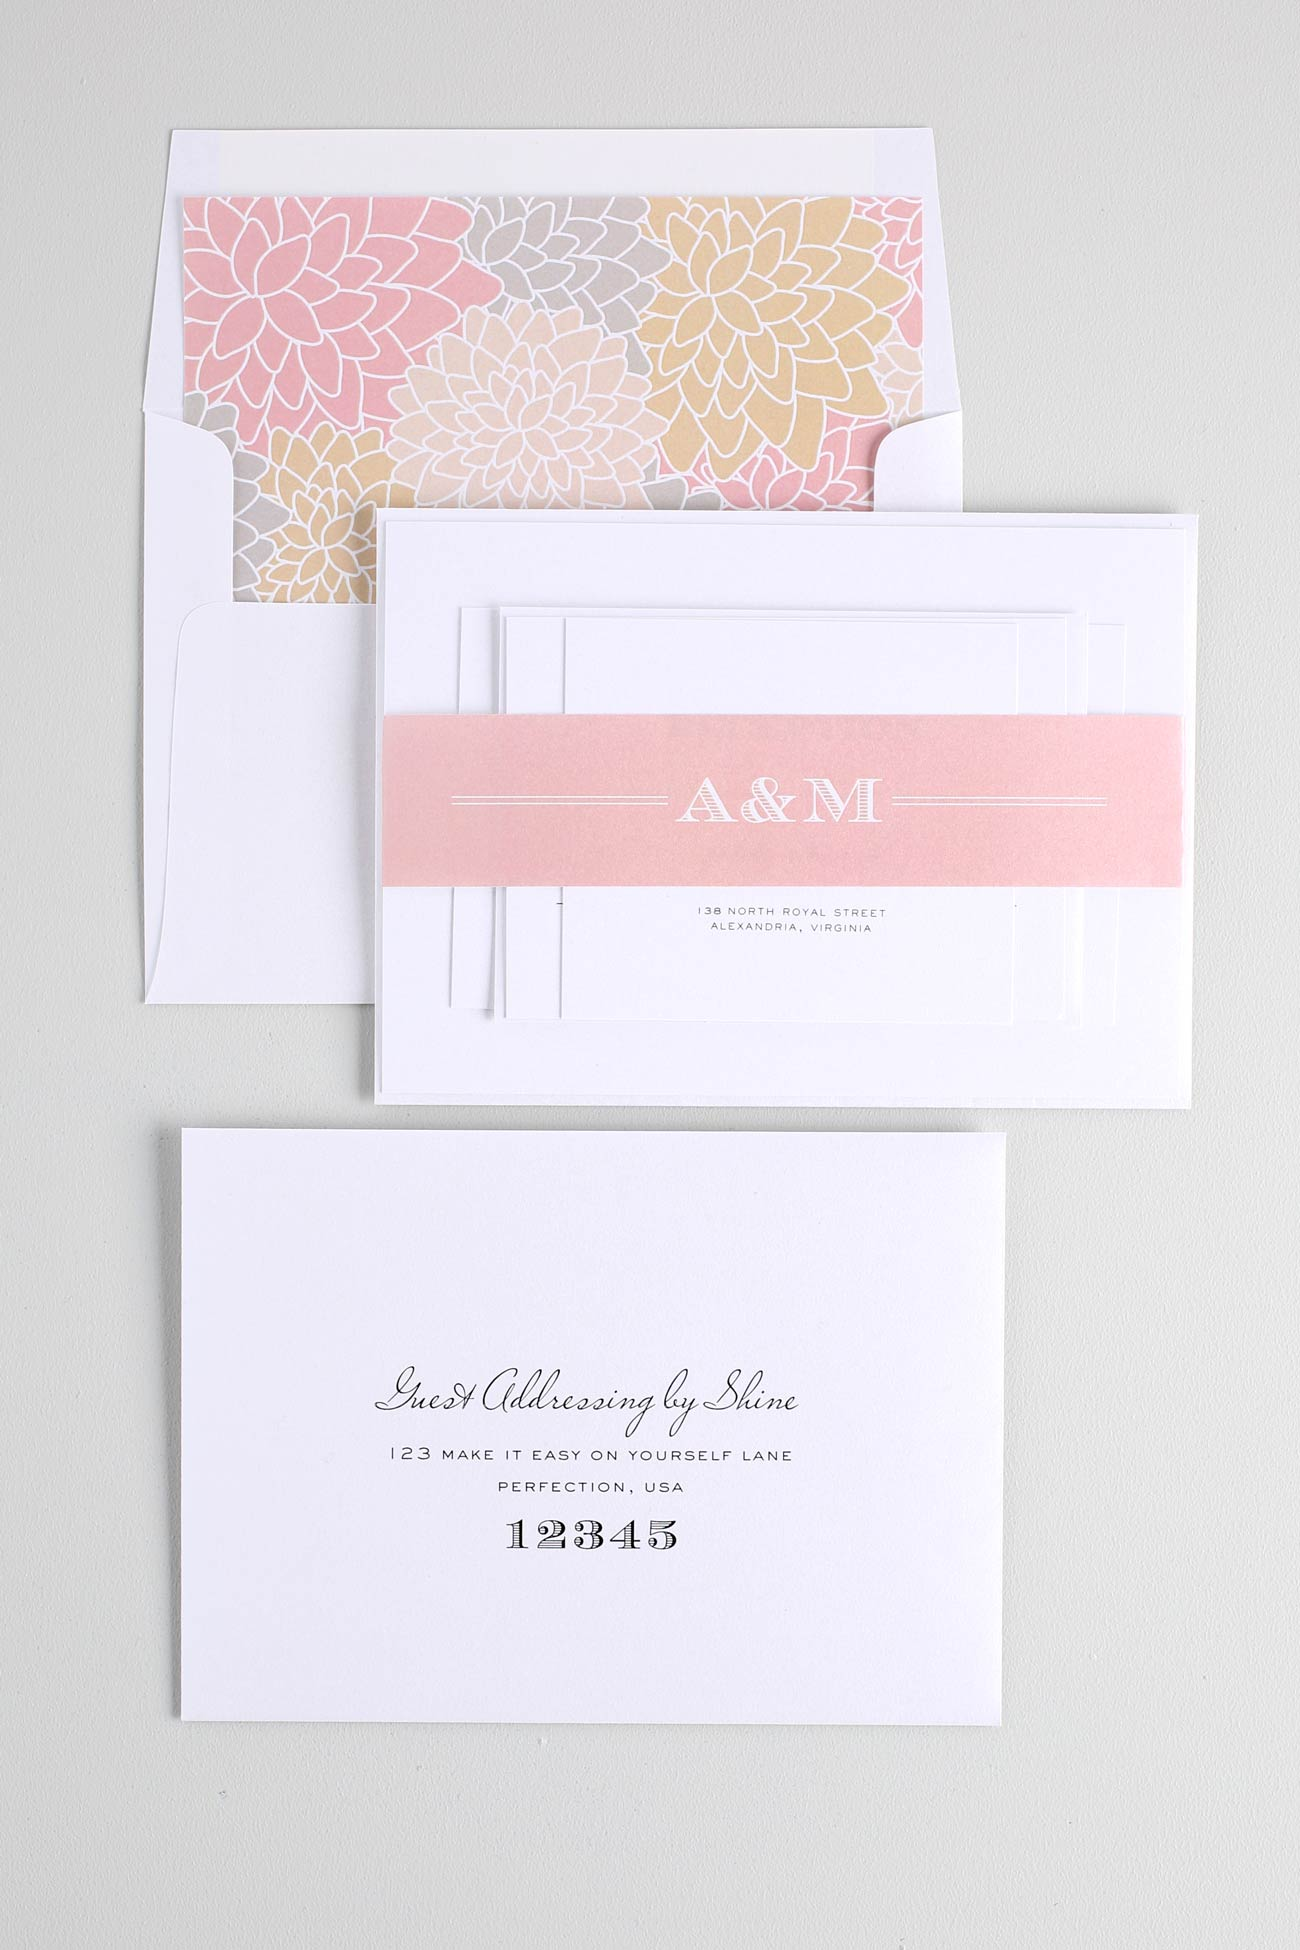 Antique Wedding Invitations In Champagne And Blush